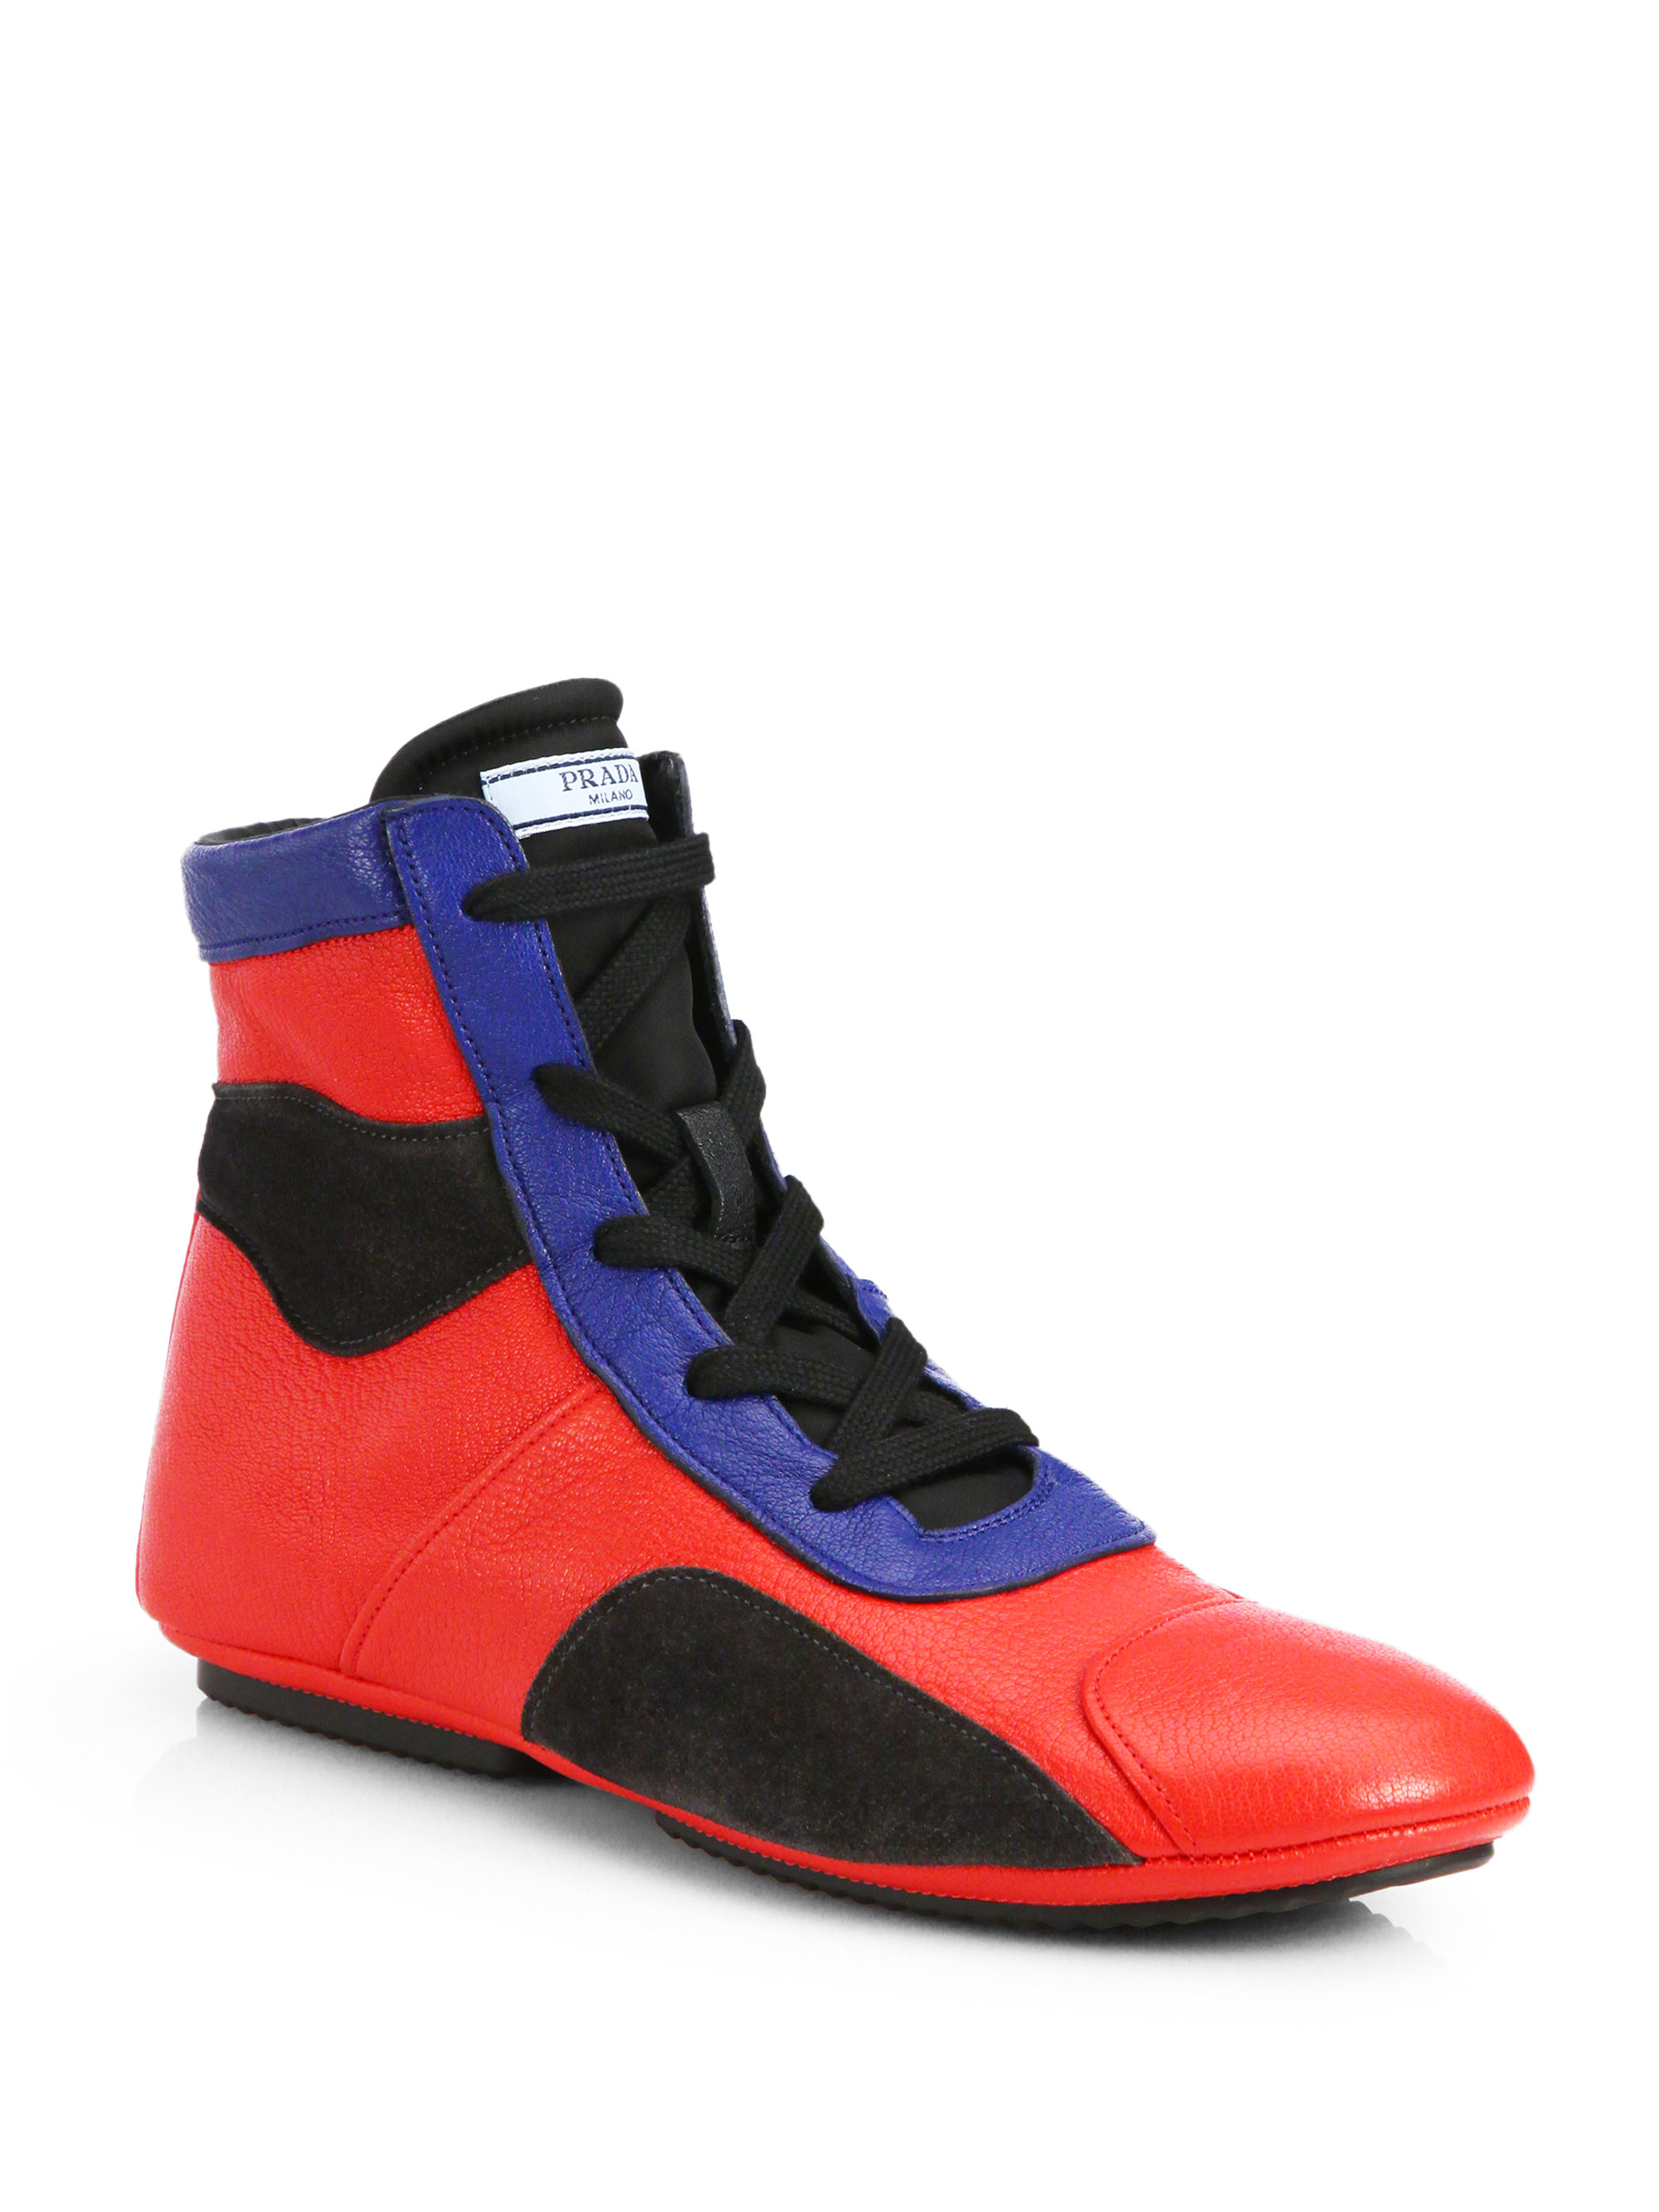 faaf3e7c5ce2 clearance lyst prada multicolor hightop boxing sneakers in red for men  f3c82 55395